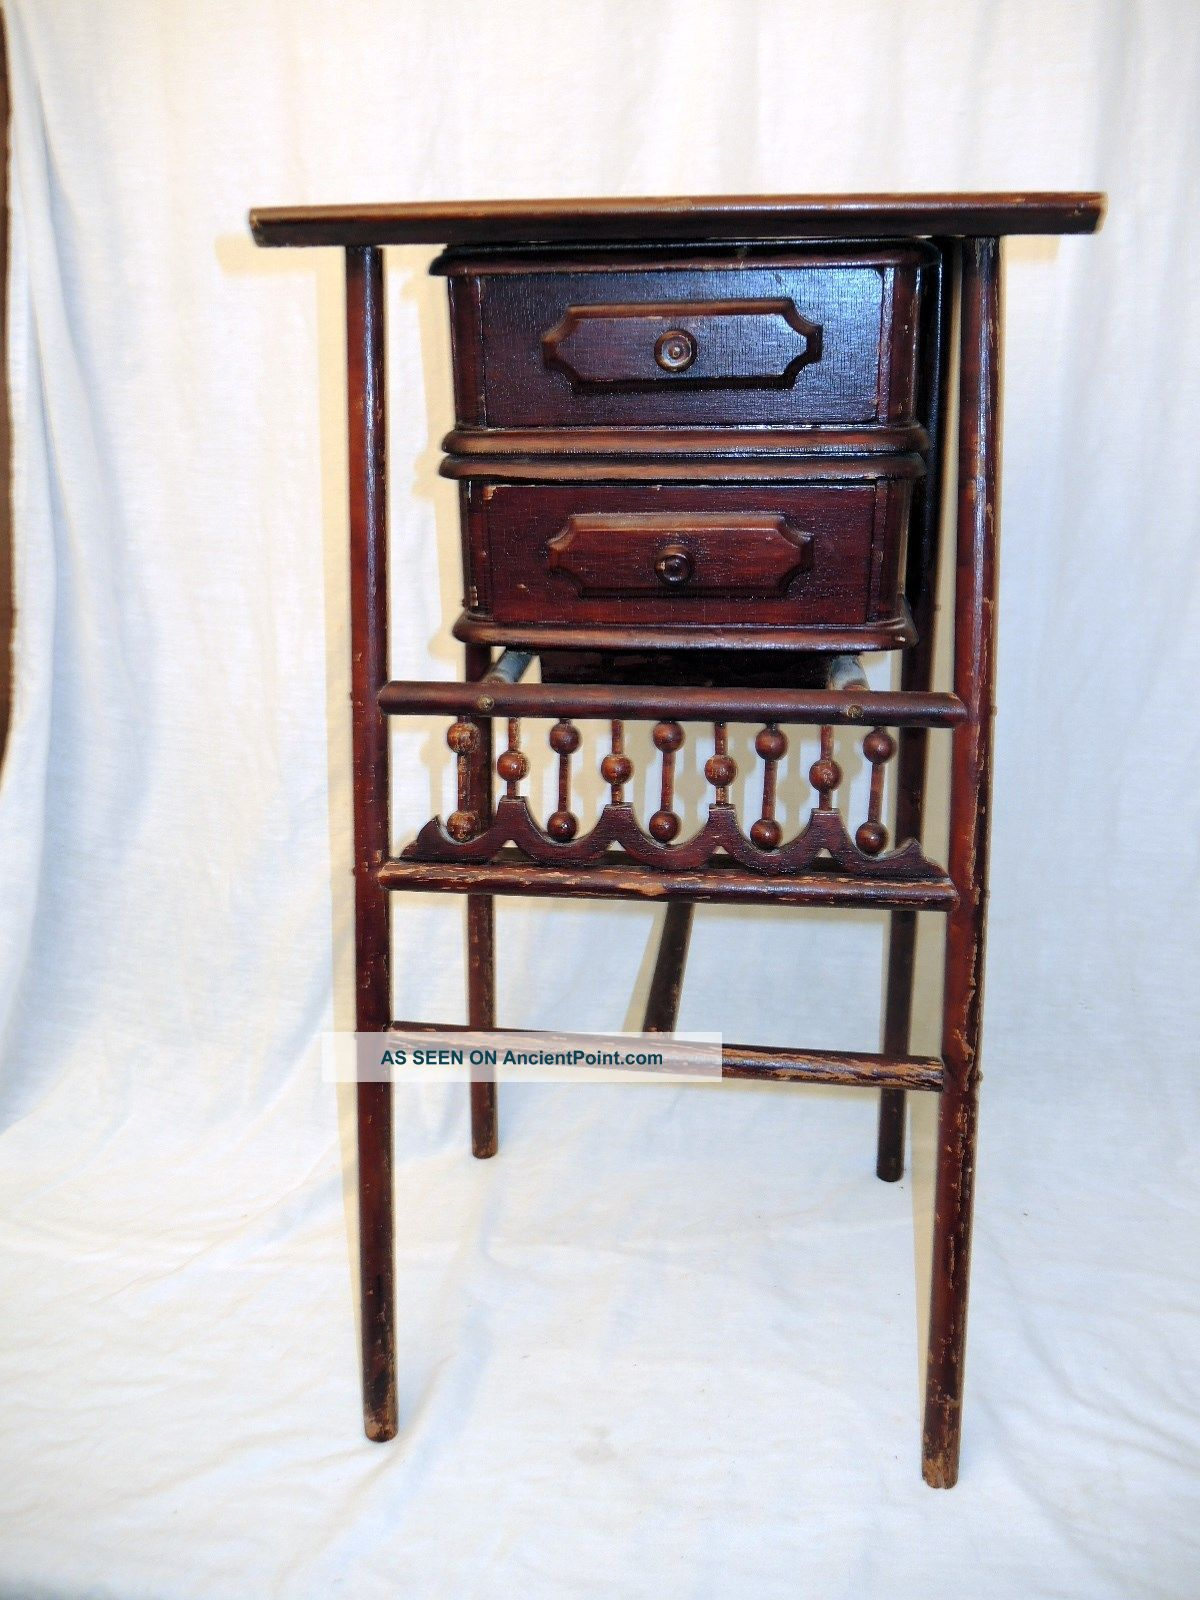 Antique Ornate Ball & Stick Two Drawer Sewing Or Phone Stand - 16 X 11 Top 1800-1899 photo